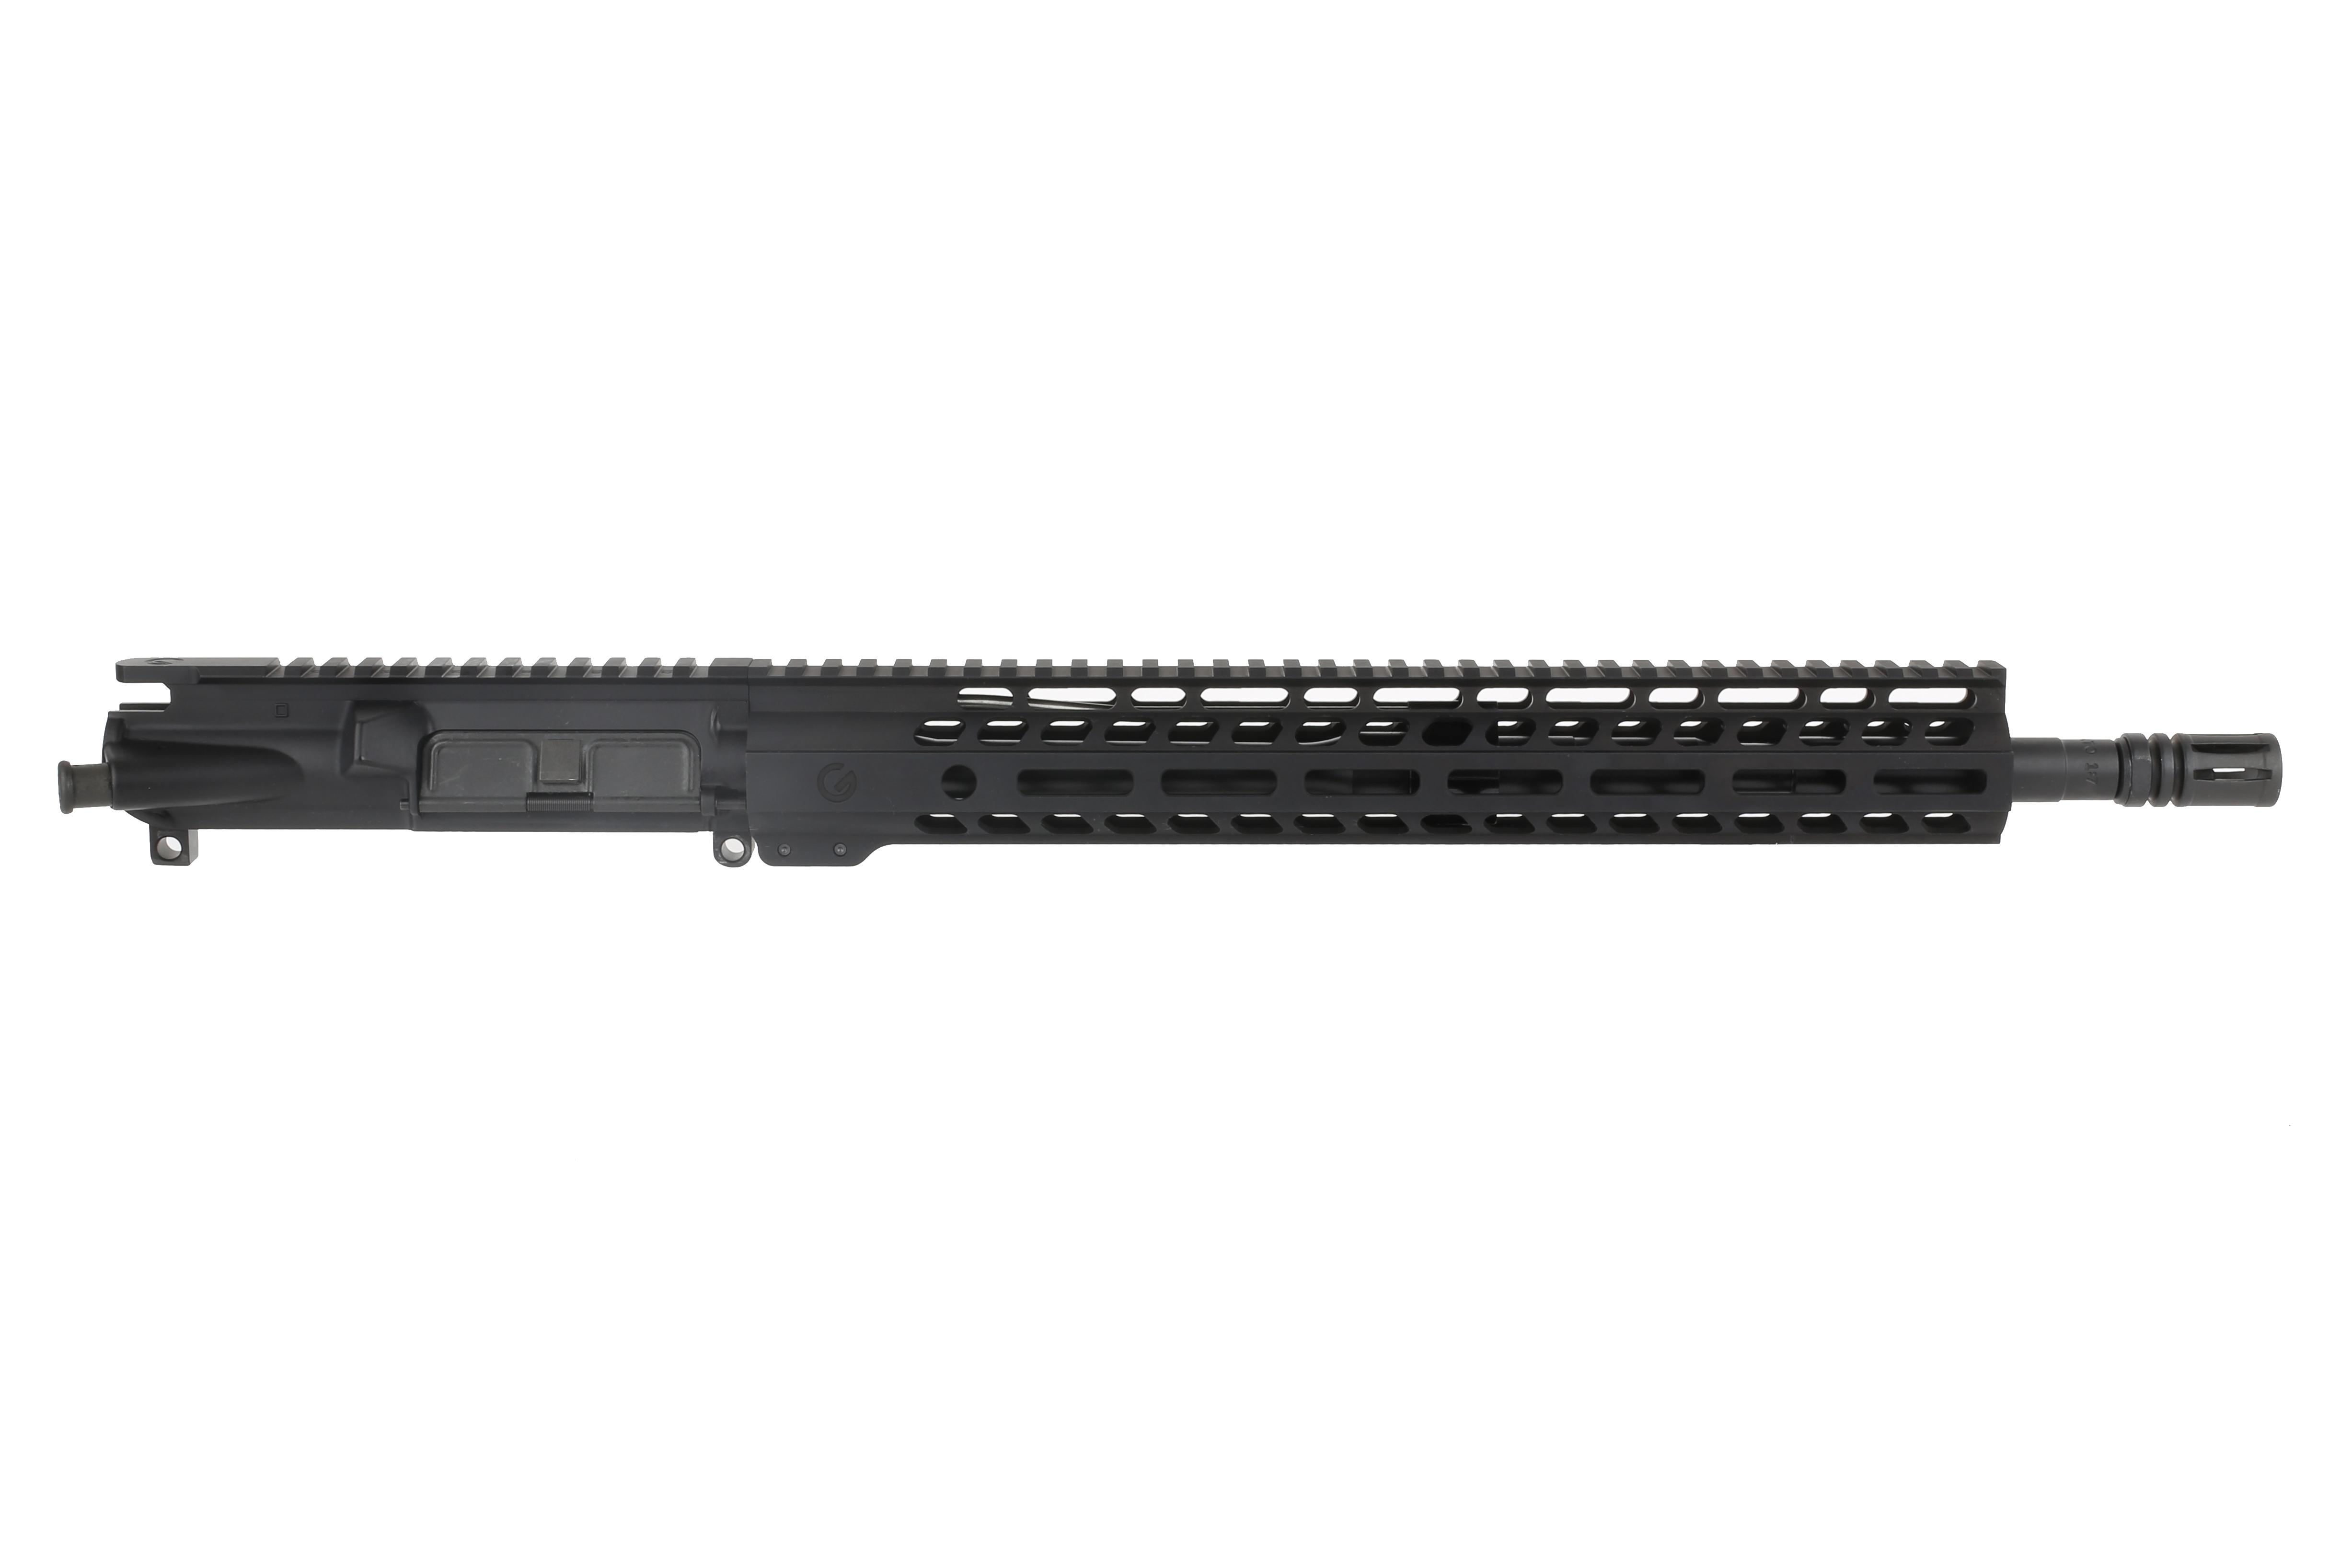 This m4 flat top upper receiver group is made by ghost firearms and has a 16 inch barrel